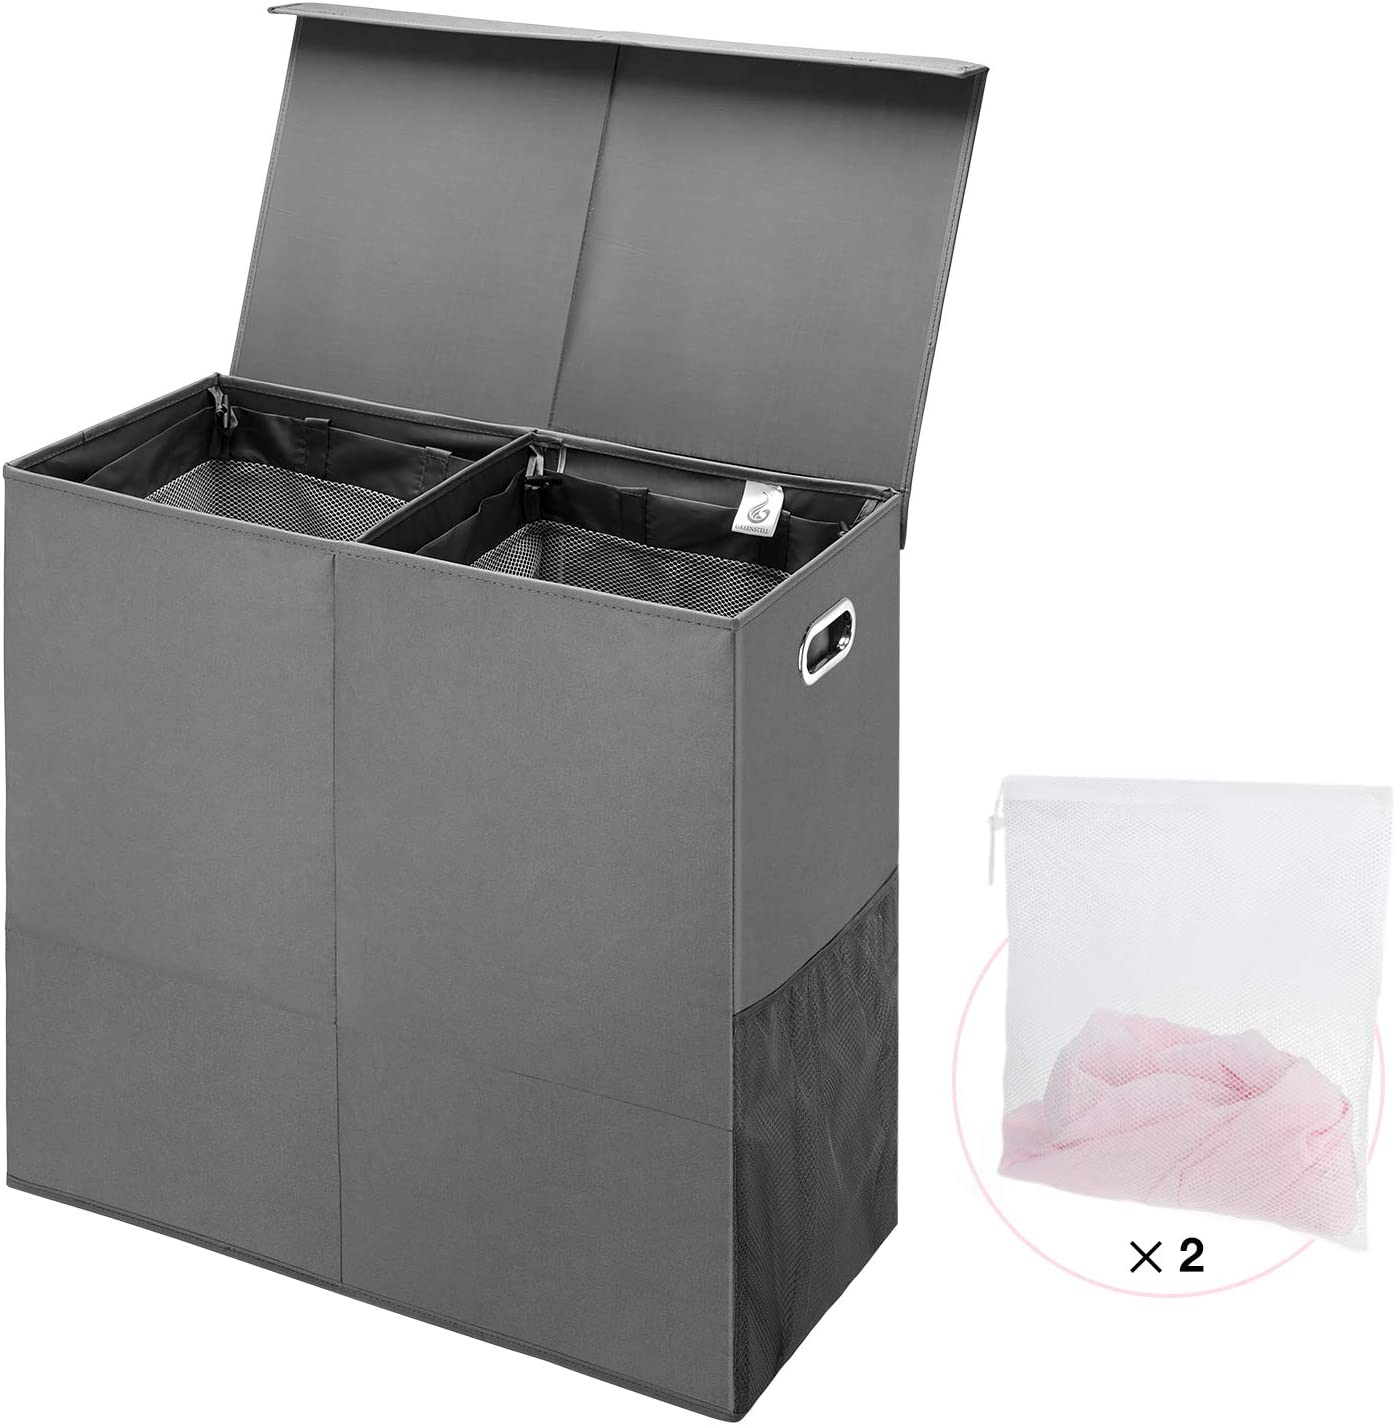 GREENSTELL Laundry Hamper with Lid Foldable 専門店 Divided ランキングTOP5 Handles and